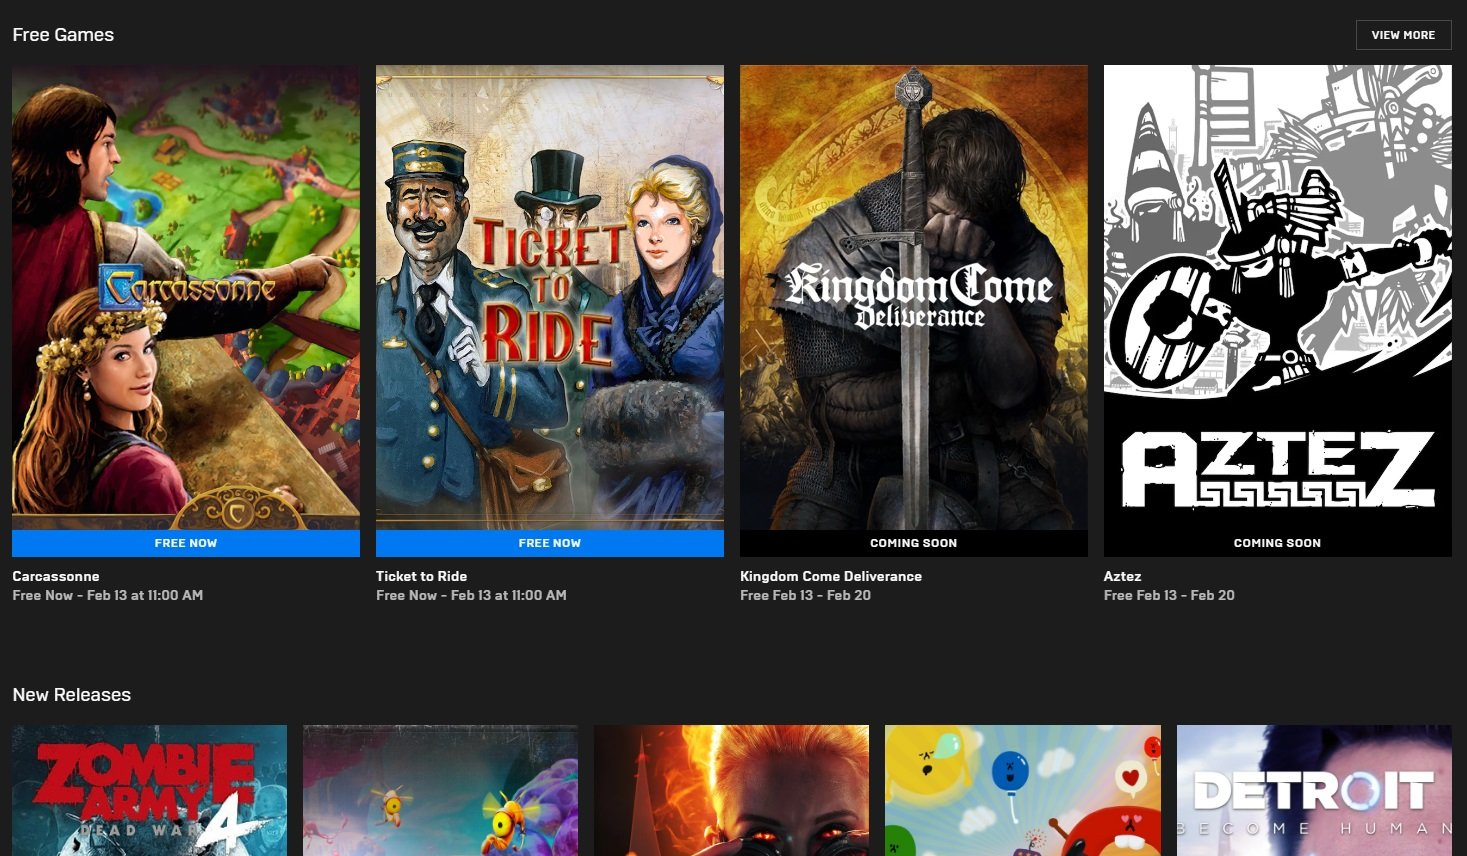 Epic Games Store offers 4 free games in February